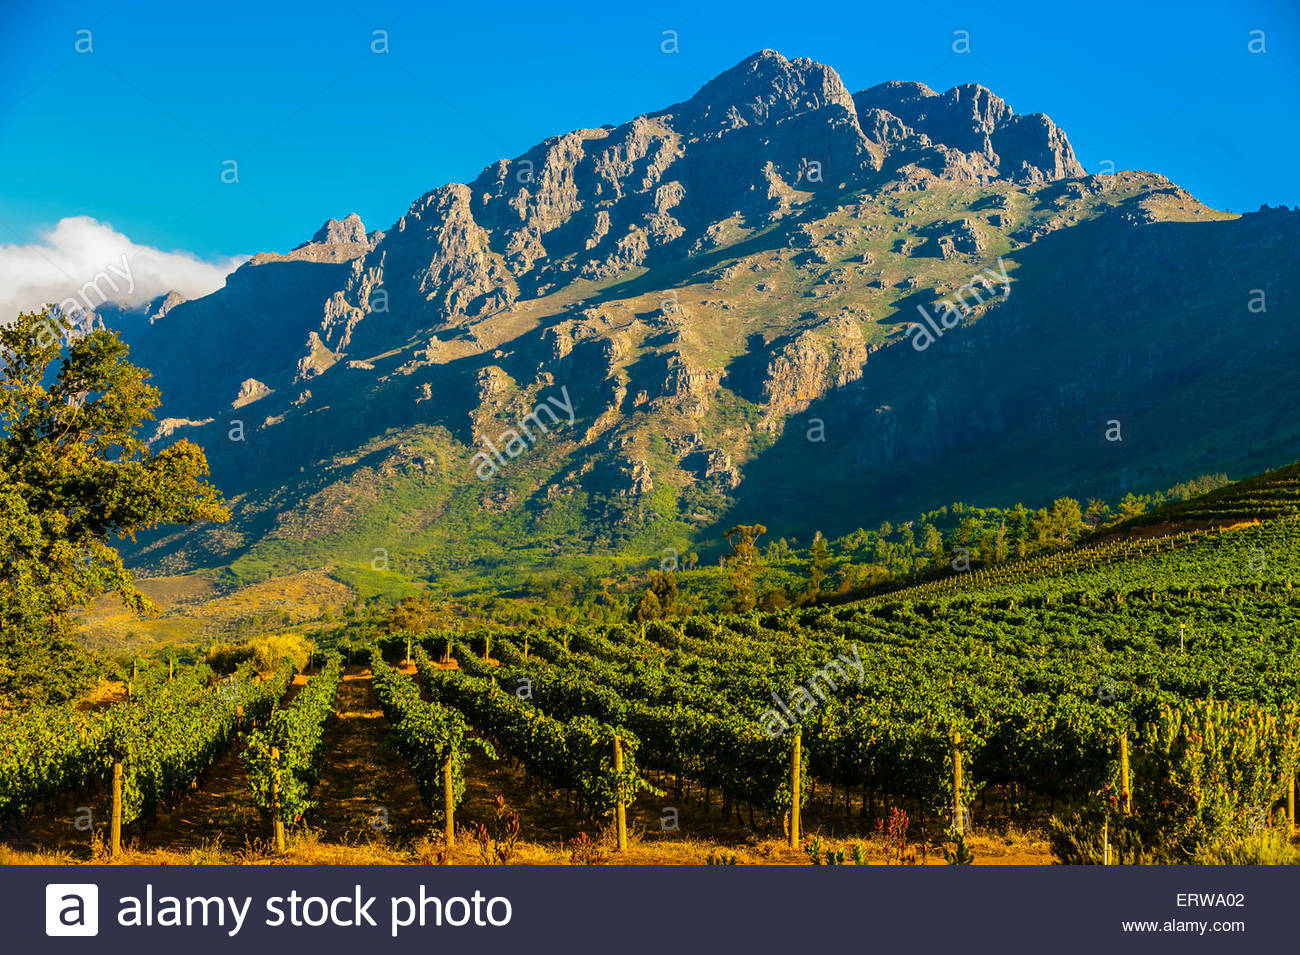 Oldenburg Vineyards, Banghoek Valley, Stellenbosch, Cape Winelands, South Africa. - Stock Image